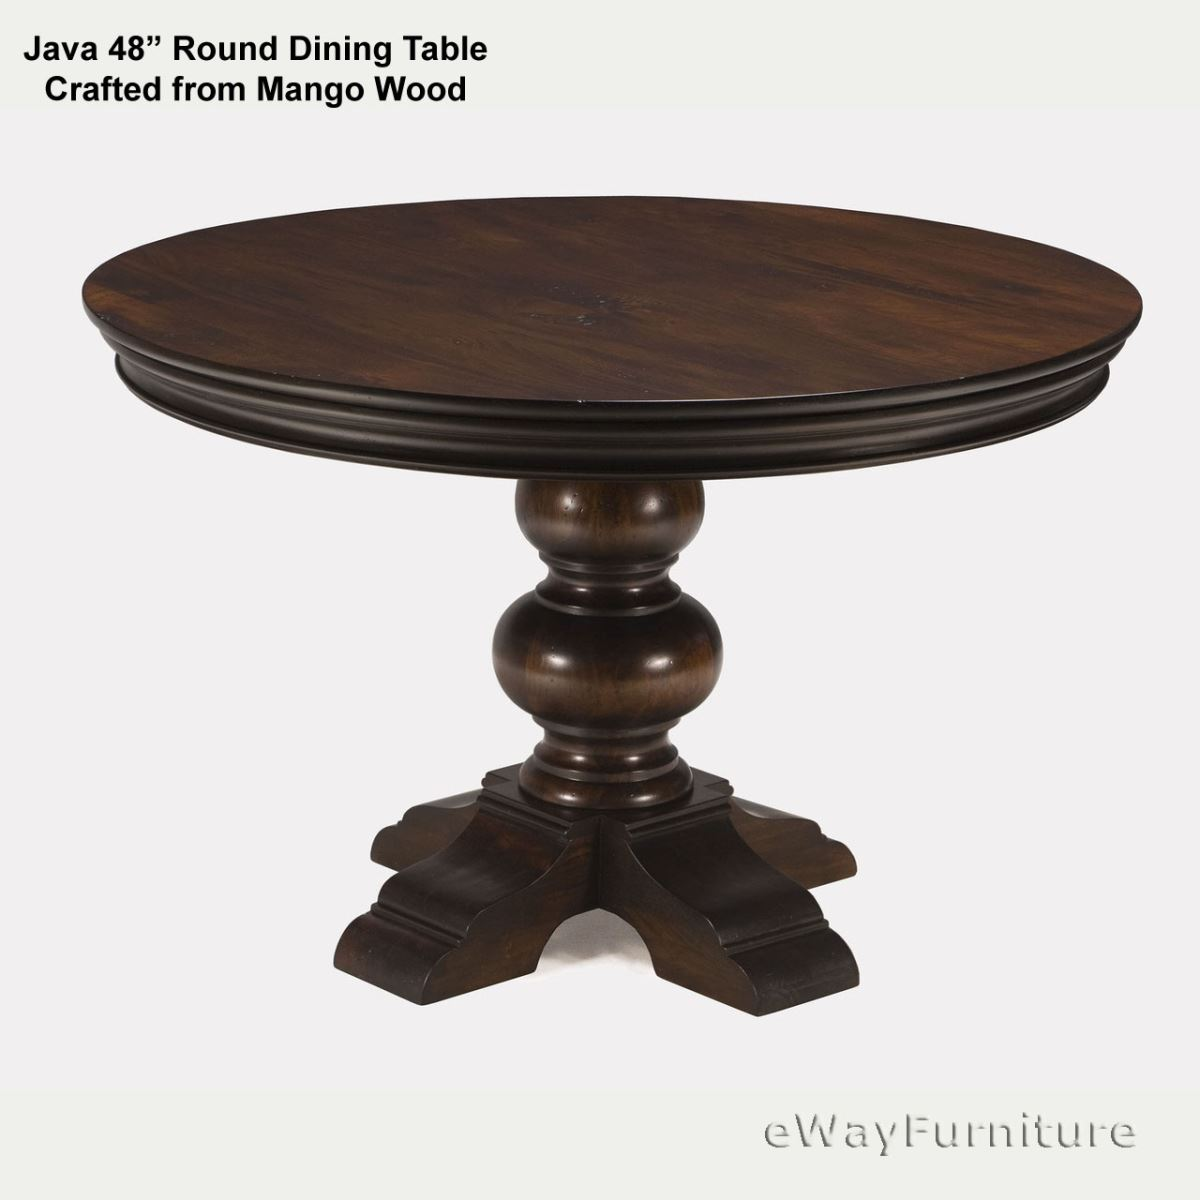 48 Square Dining Room Table: Java Round Dining Table 48 Inch